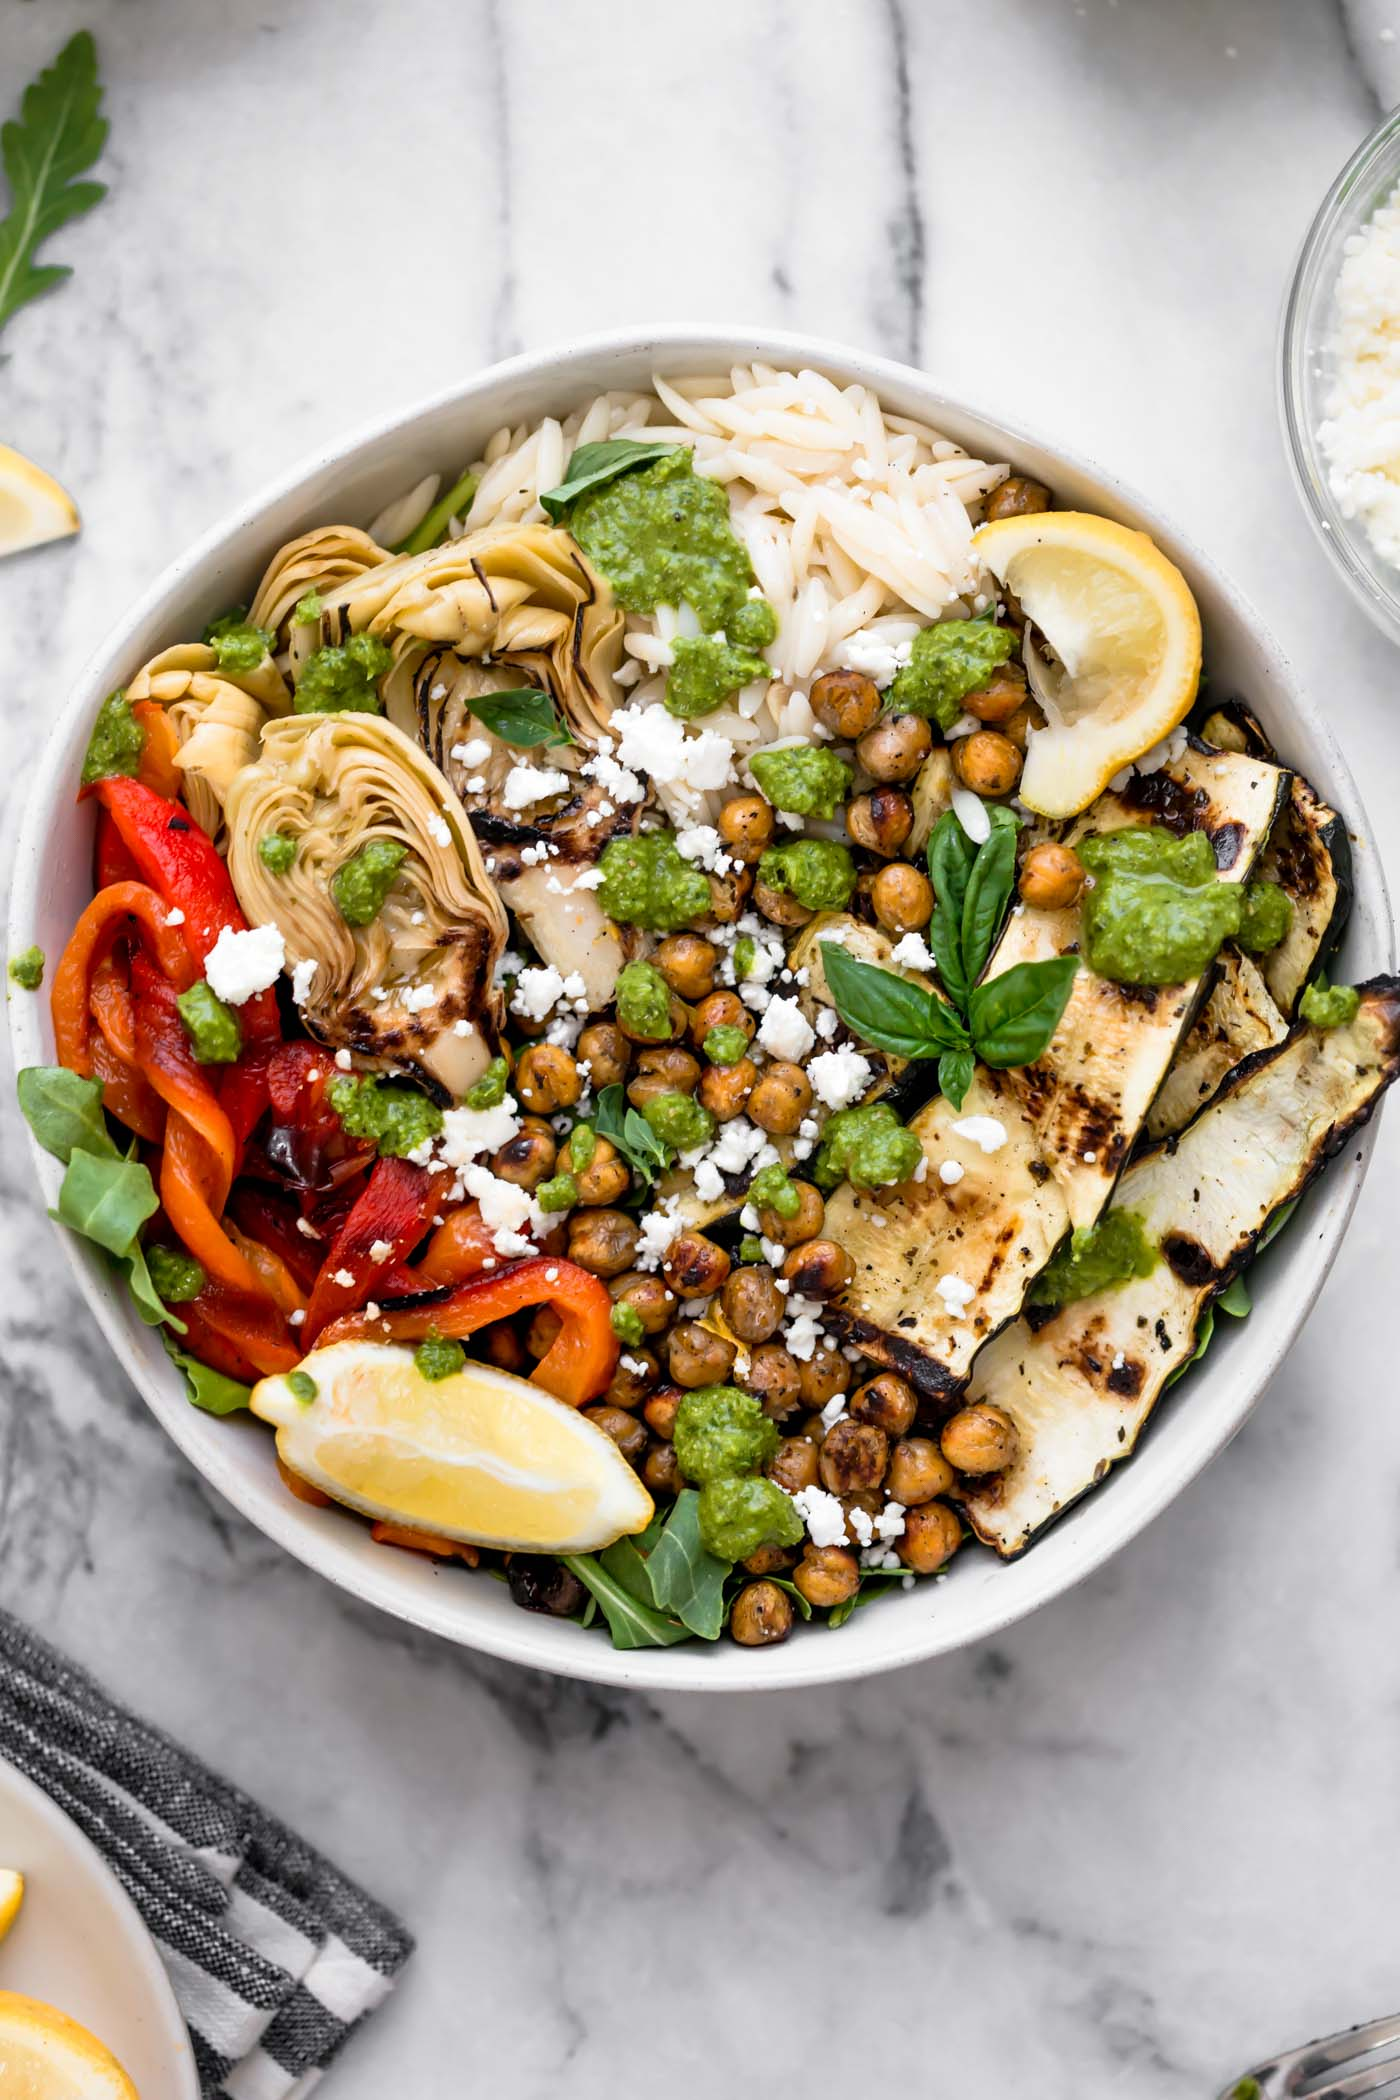 Pictured: Grilled Vegetable Primavera Bowls by Plays Well with Butter (48 Quick and Easy Meatless Meals for Busy People)